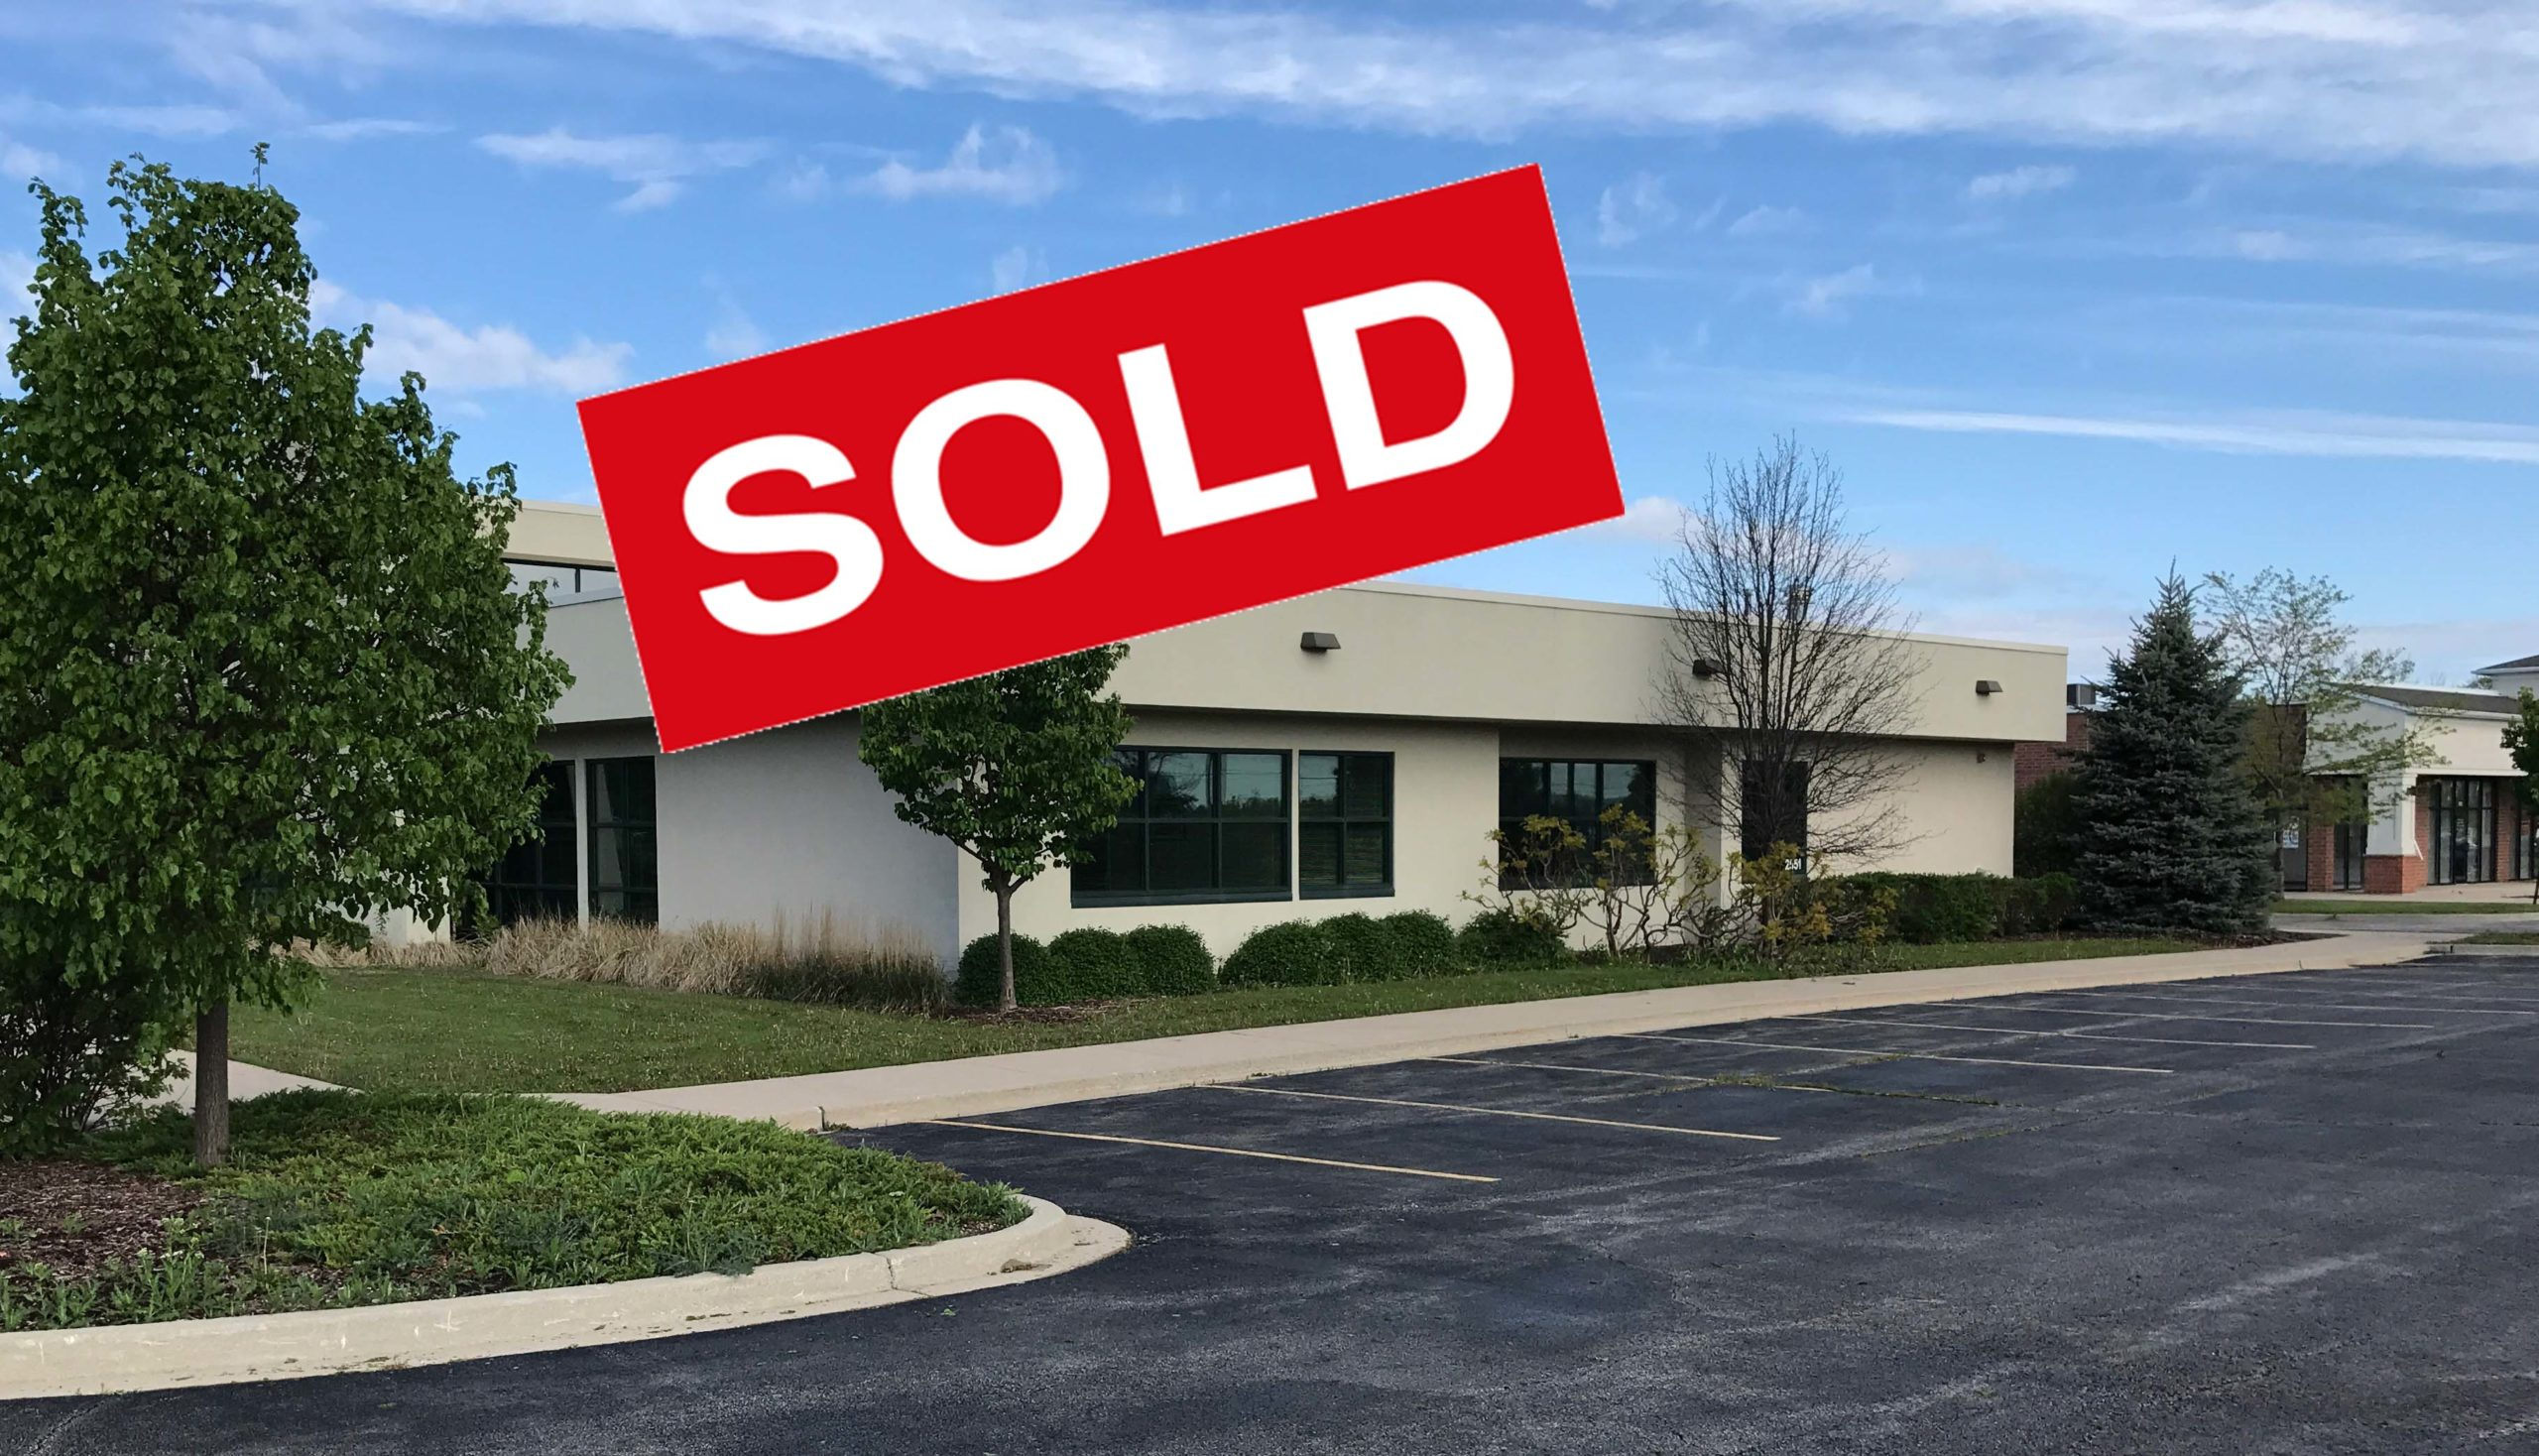 Sold-2551 N. Bridge Street | Yorkville, IL 60560 | Caton Commercial